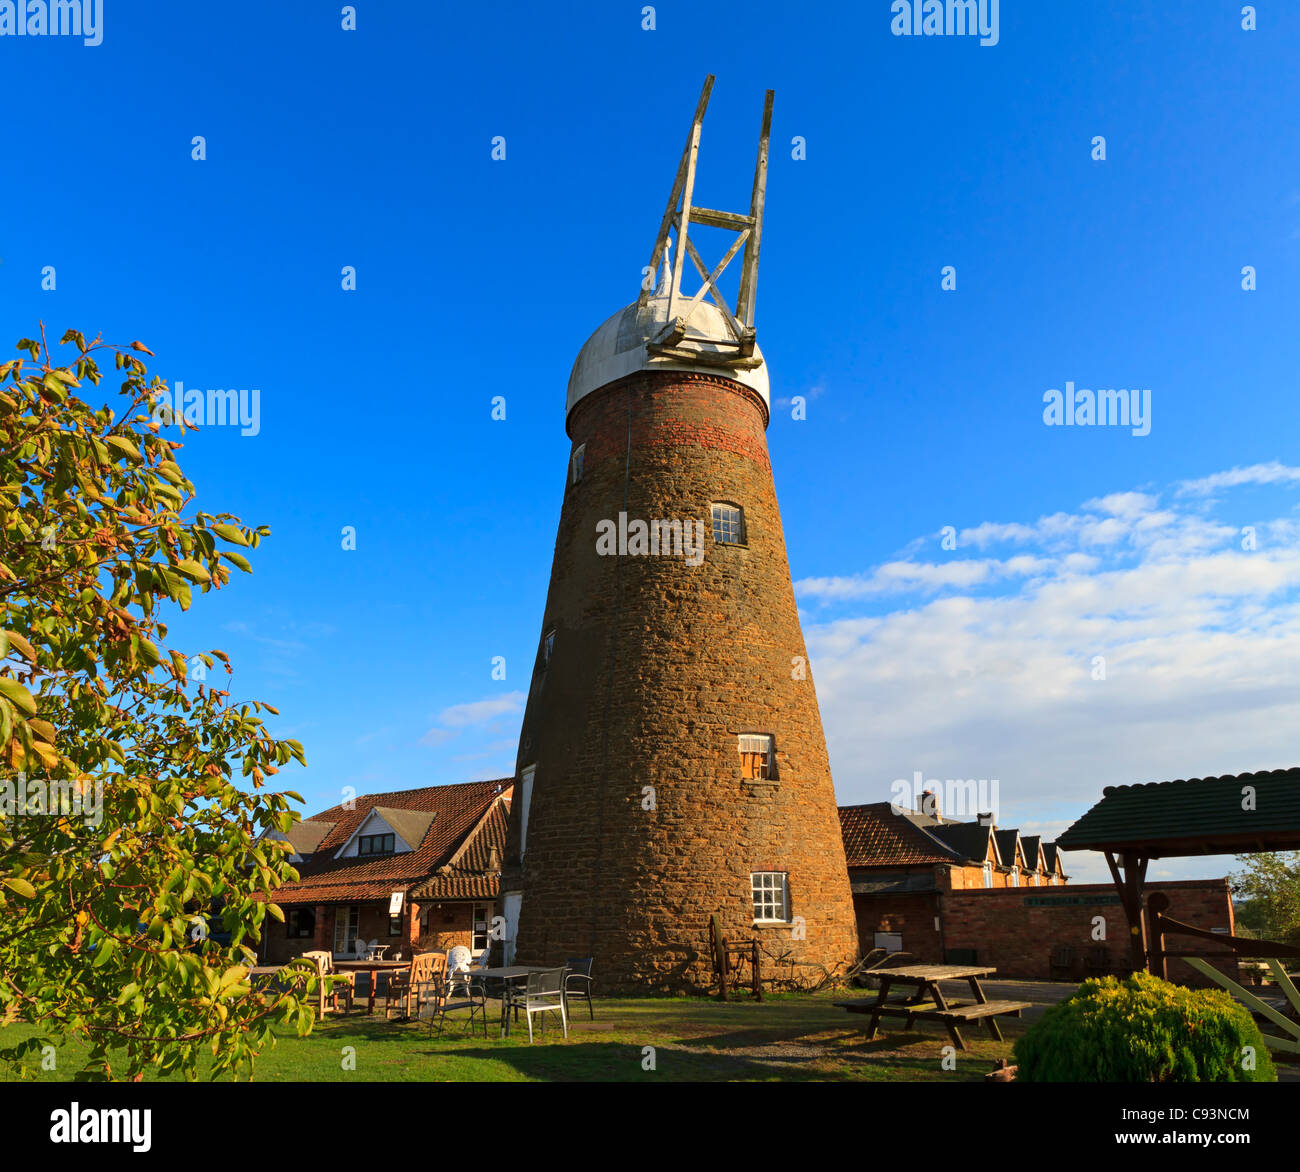 Wymondham Windmill, Leicestershire. Five storey tower mill built in 1814. Ceased operation in 1960. Partially restored. - Stock Image